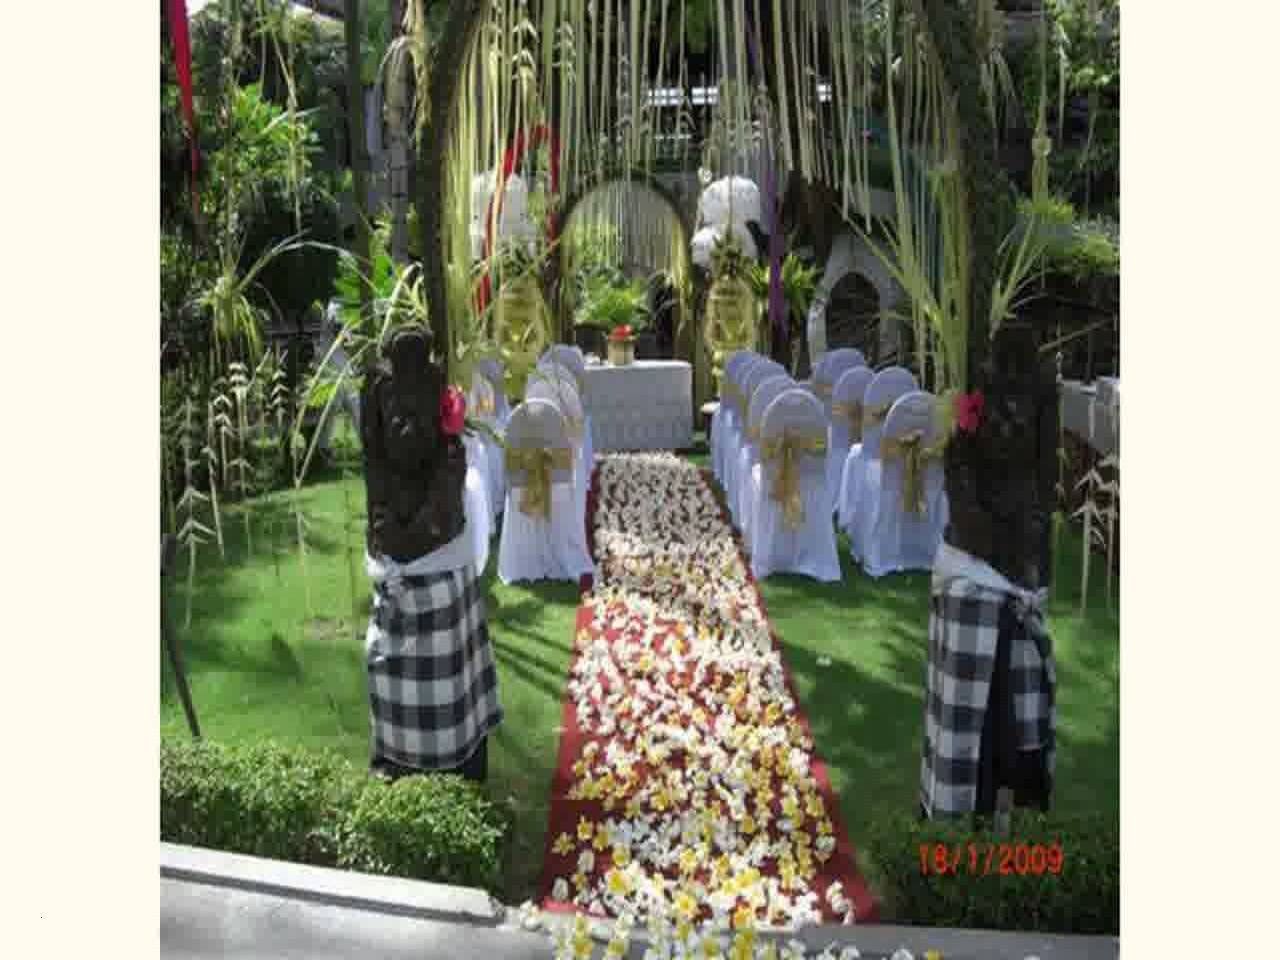 Decorating Ideas for Hurricane Vases Of Awesome Garden Wedding Decor Ideas Garden Ideas Regarding Garden Wedding Decor Ideas Lovely Cheap Outdoor Wedding Decorations Best Wedding Decore 0d Design